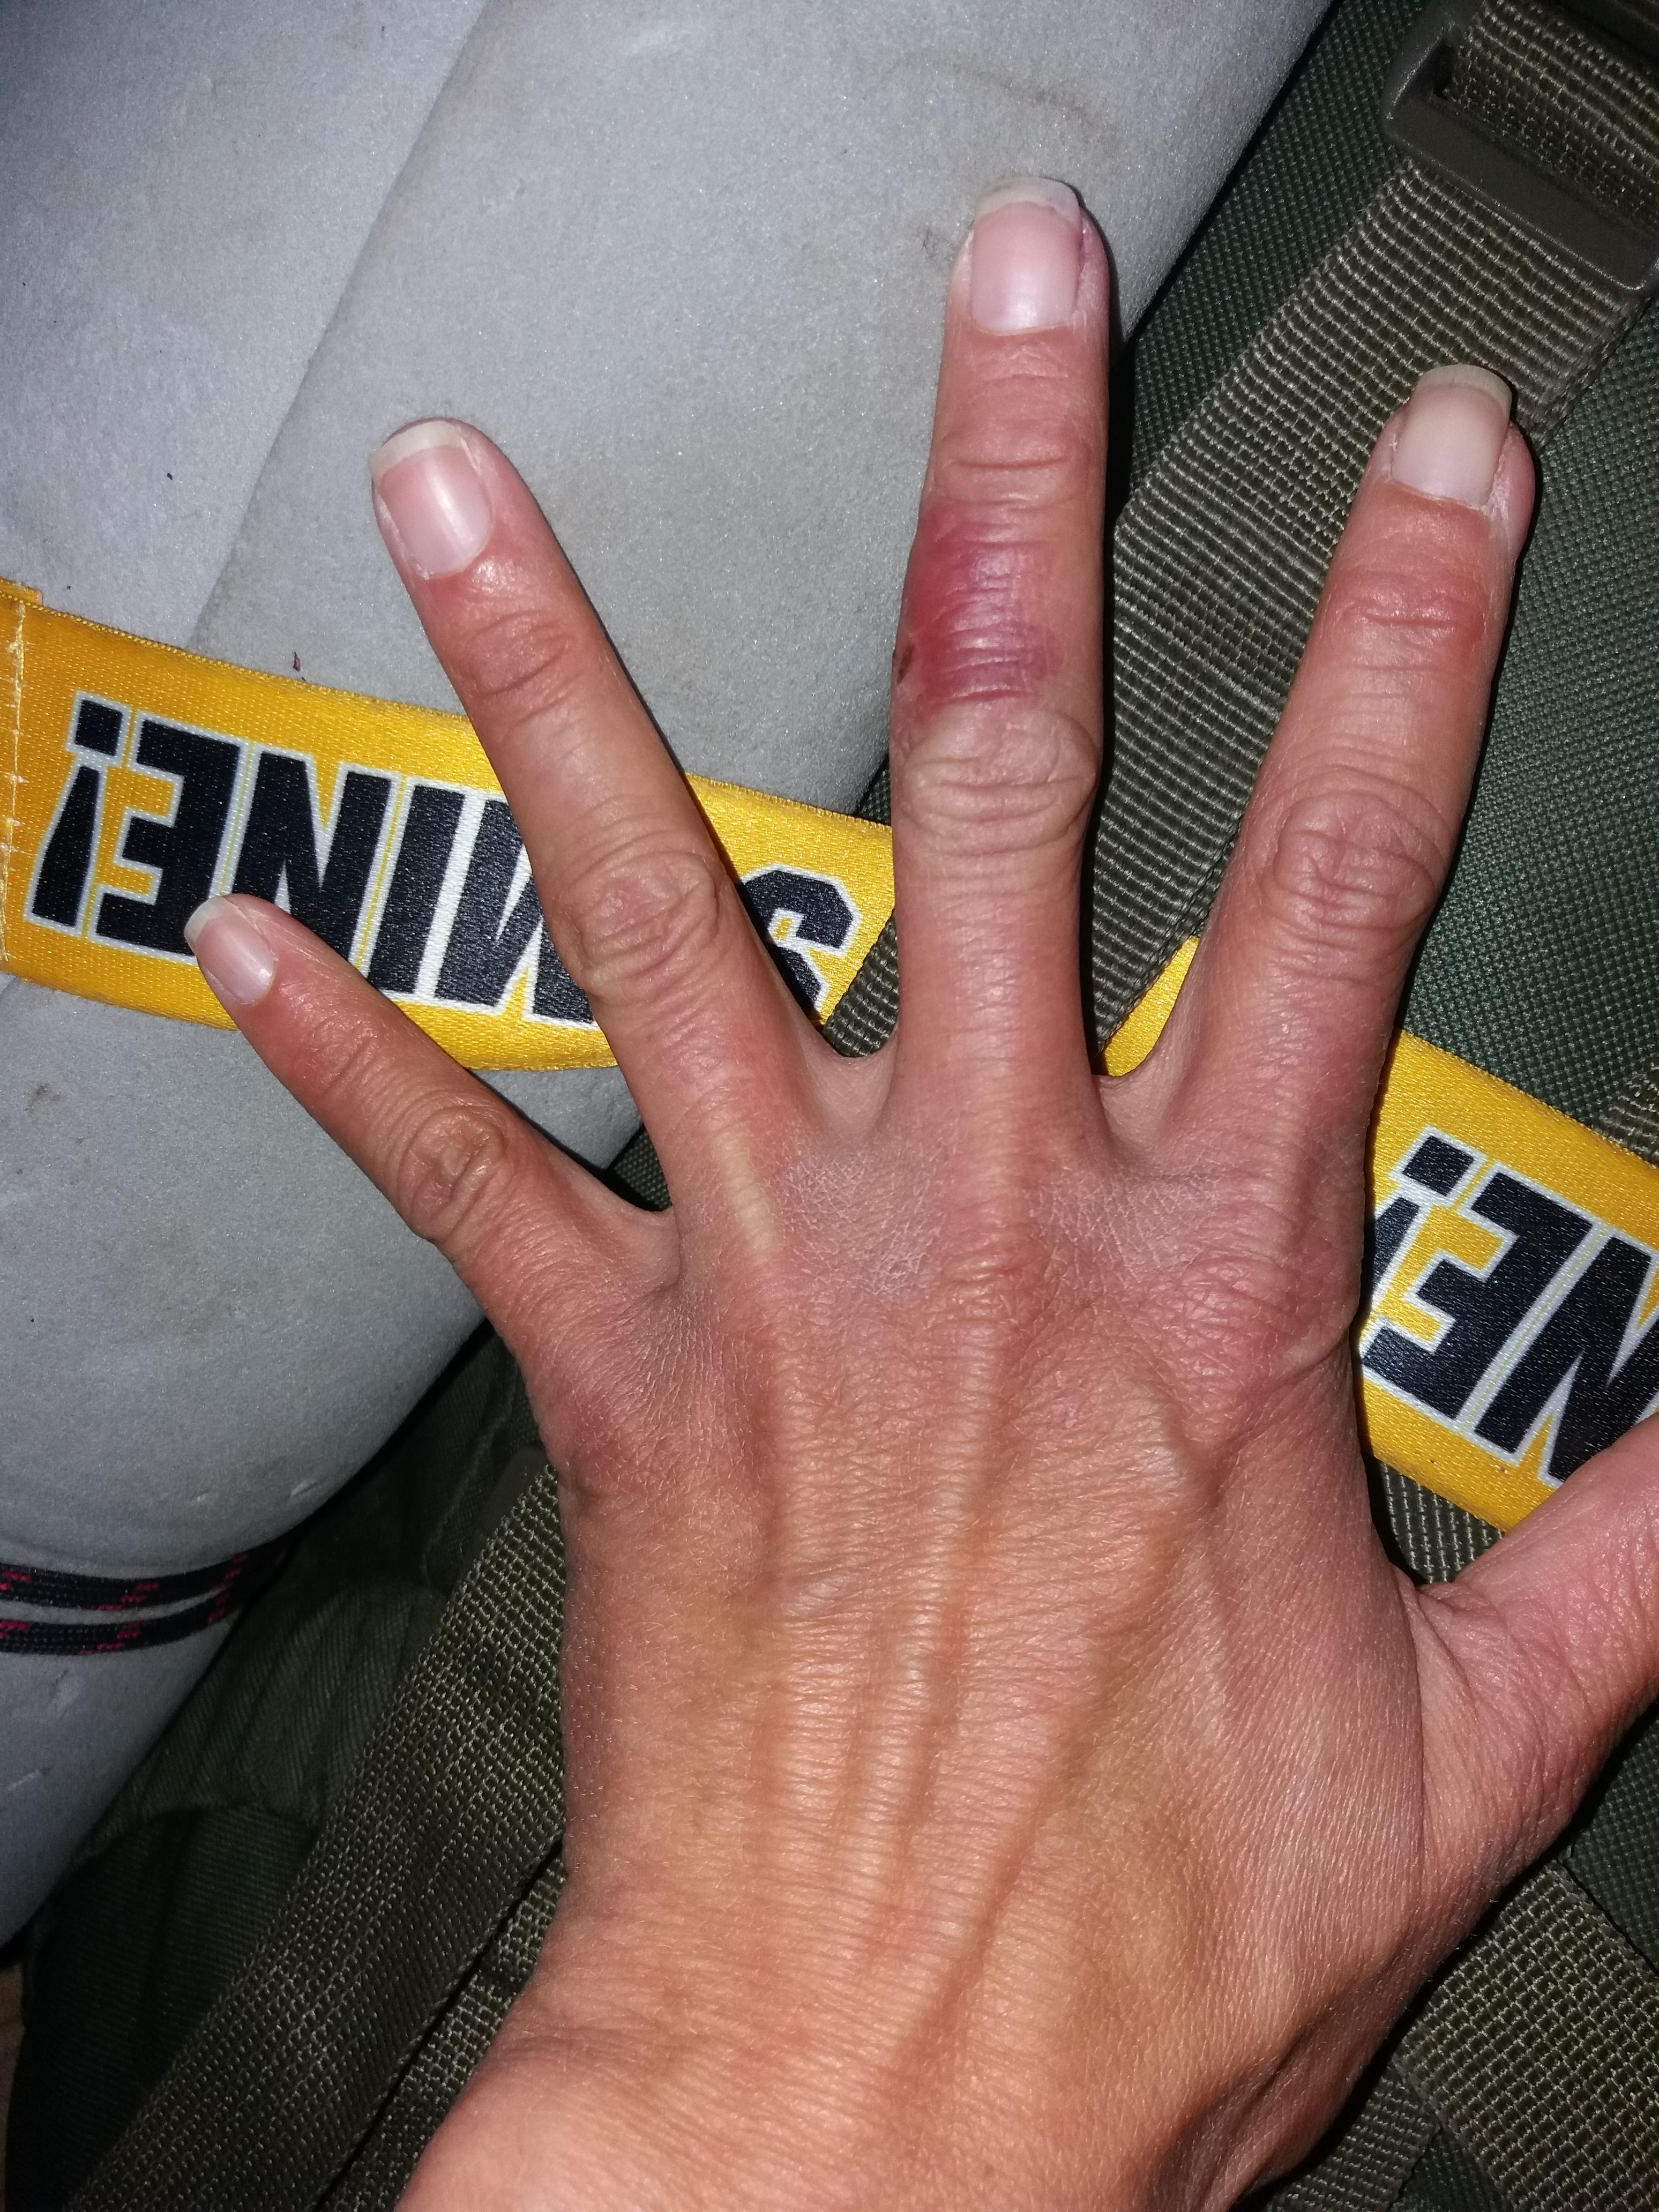 Cellulitis in hand slowly healing